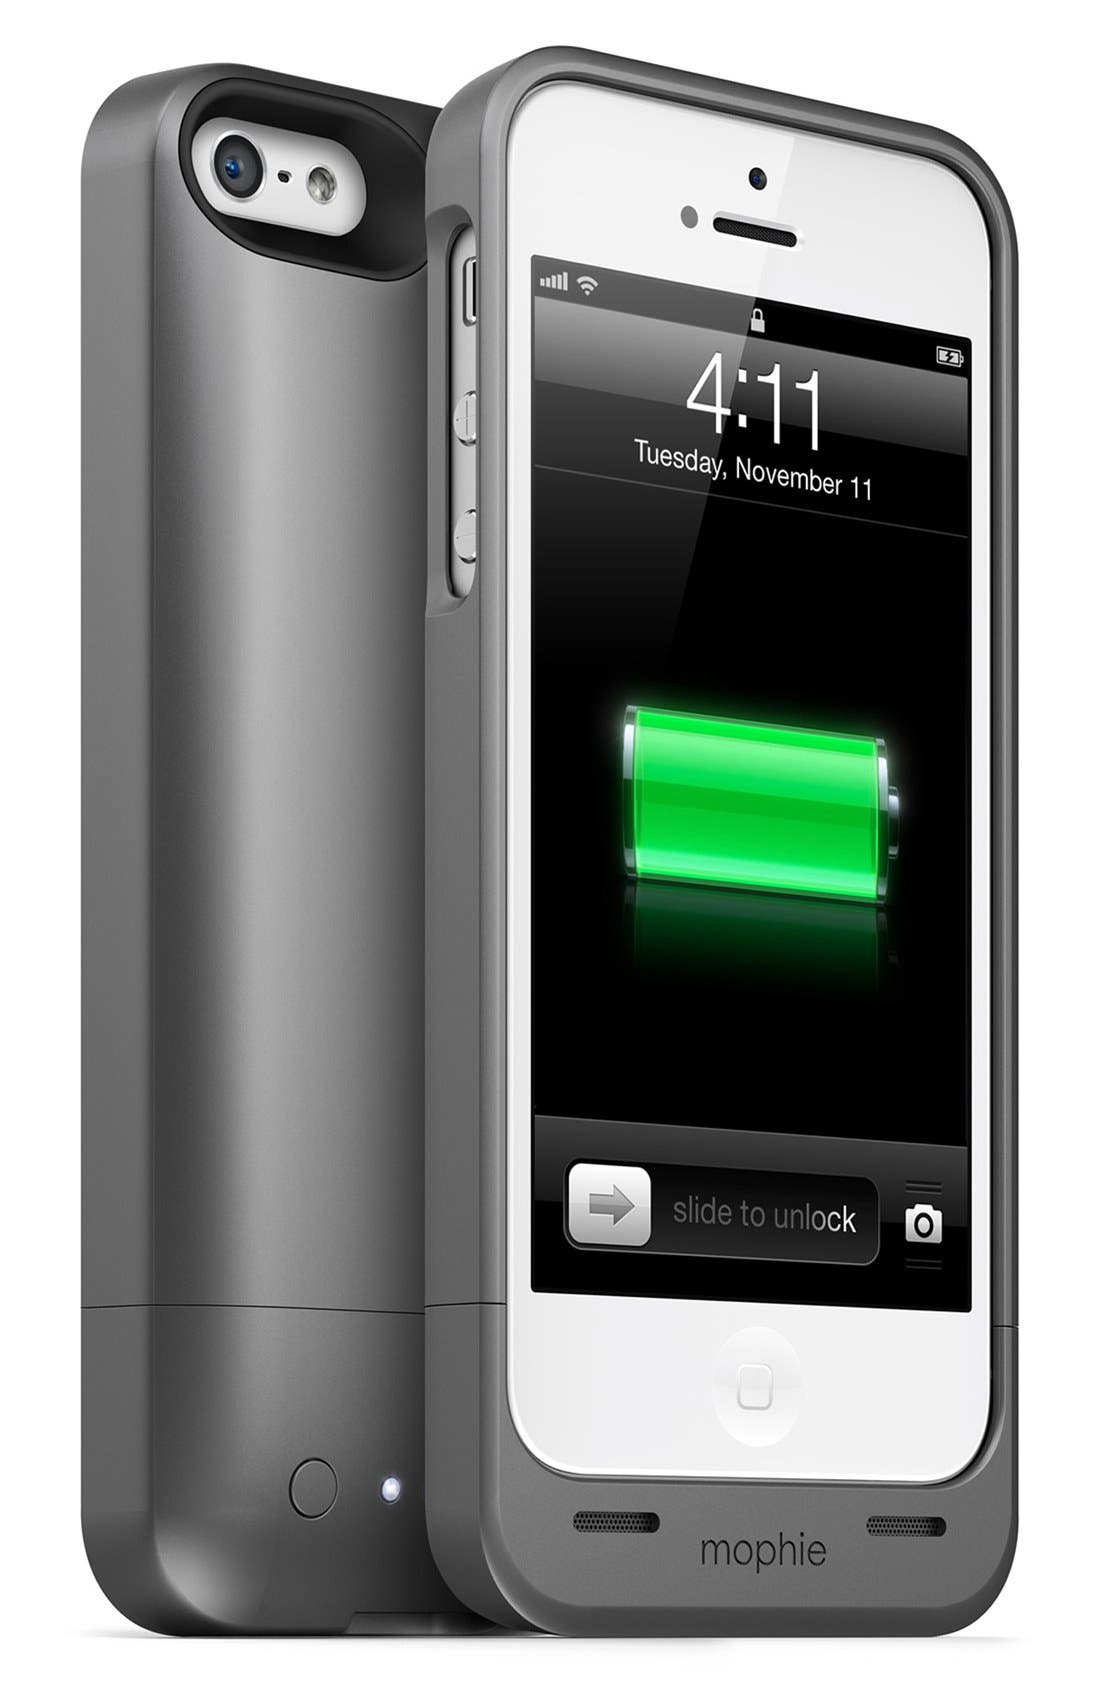 Main Image - mophie 'juice pack helium' iPhone 5/5s charging case